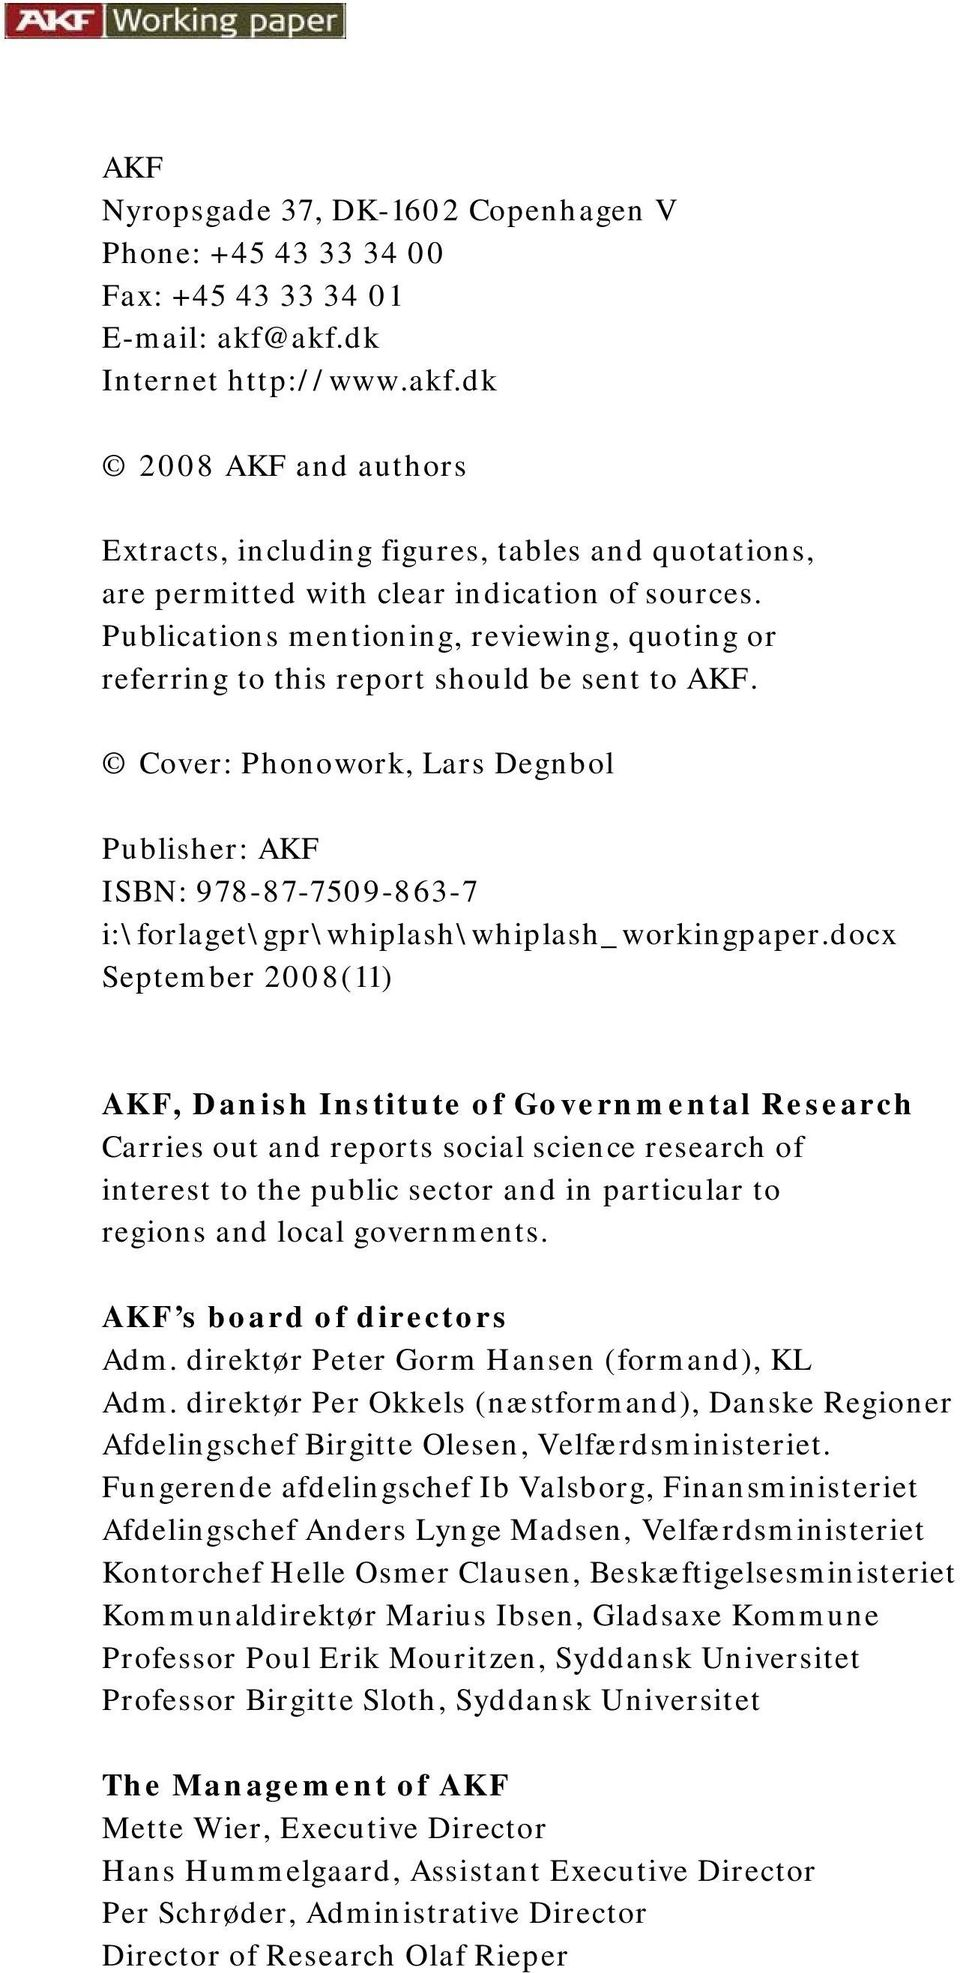 Publications mentioning, reviewing, quoting or referring to this report should be sent to AKF.